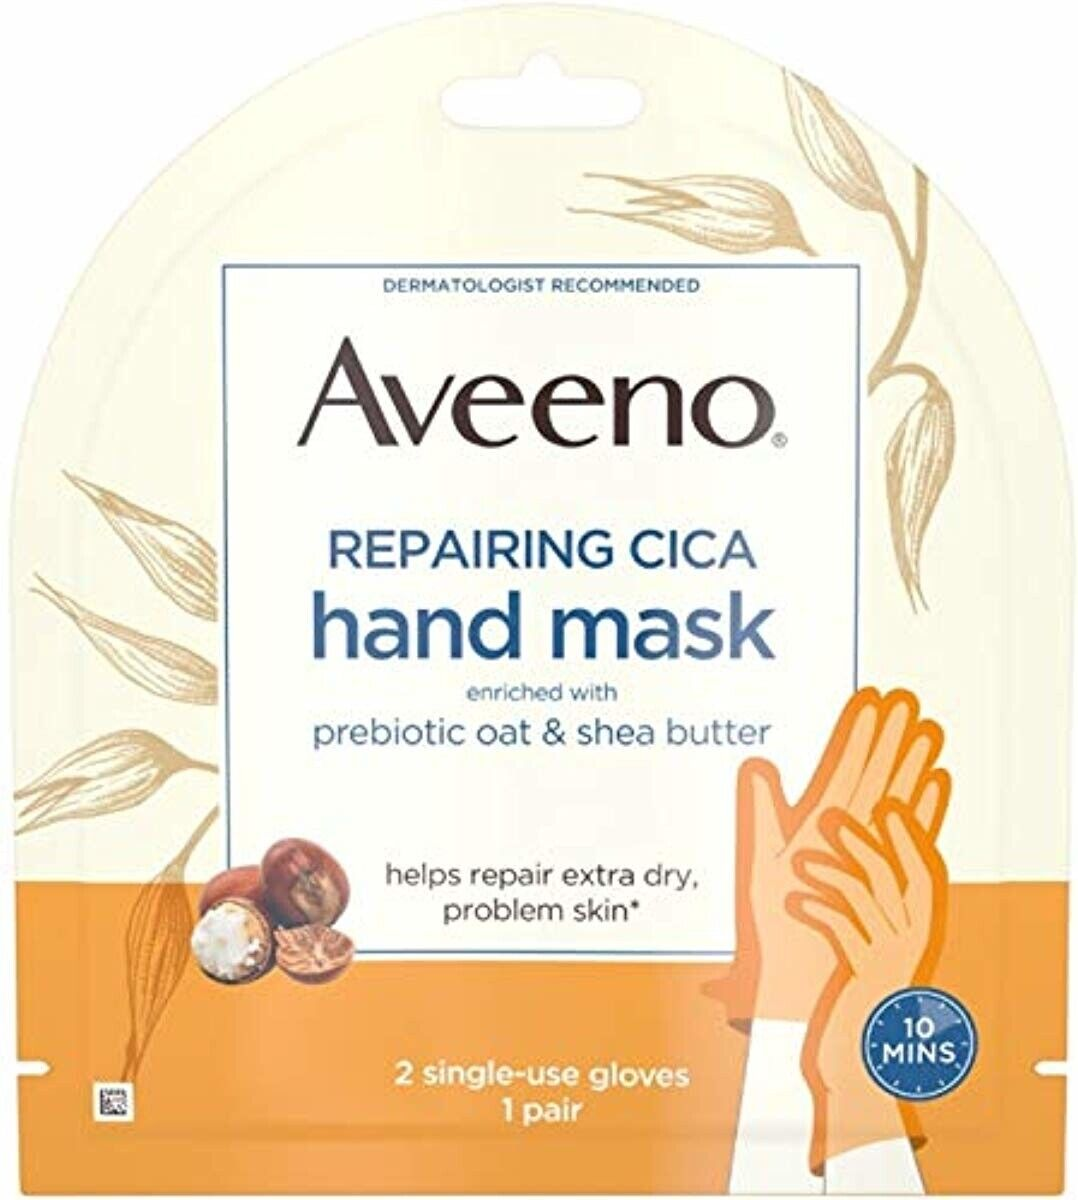 Aveeno Repairing Hand Mask with Prebiotic Oat and Shea Butte